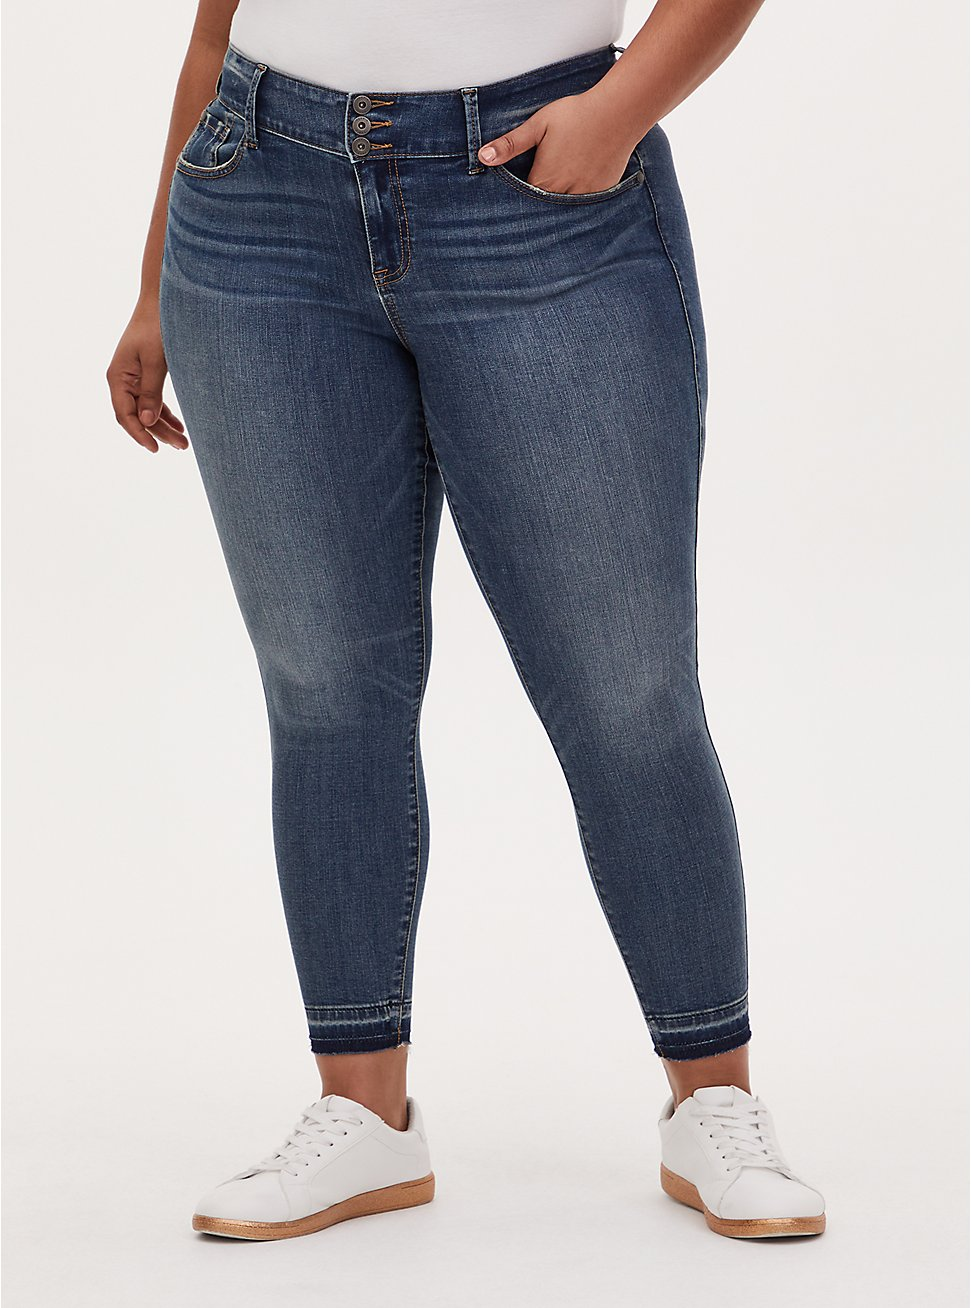 Jegging - Super Soft Medium Wash with Release Hem, MESA, hi-res